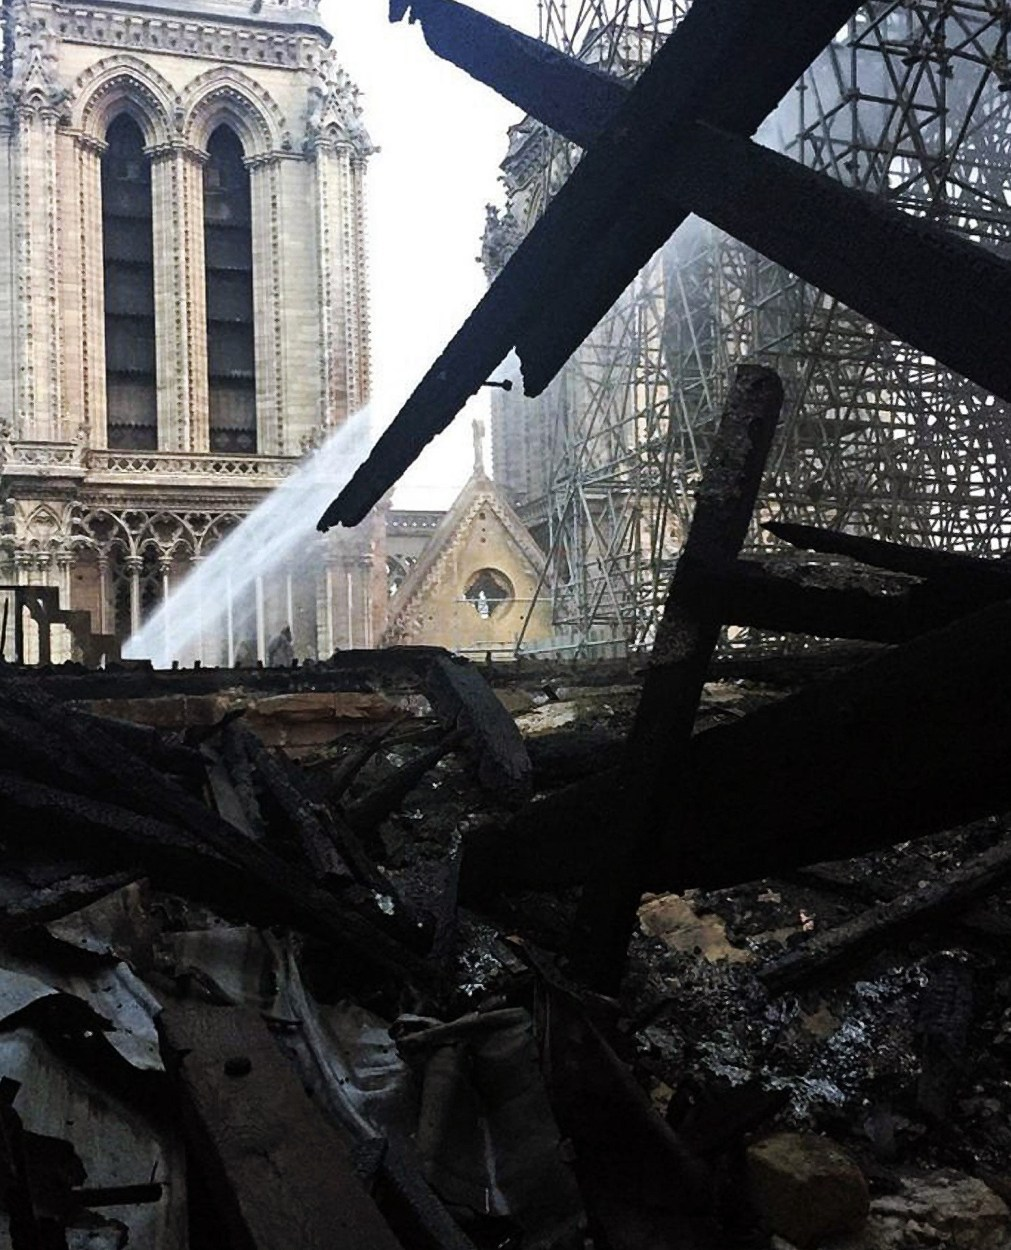 The charred ruins of the inside of the cathedral were visible at day break